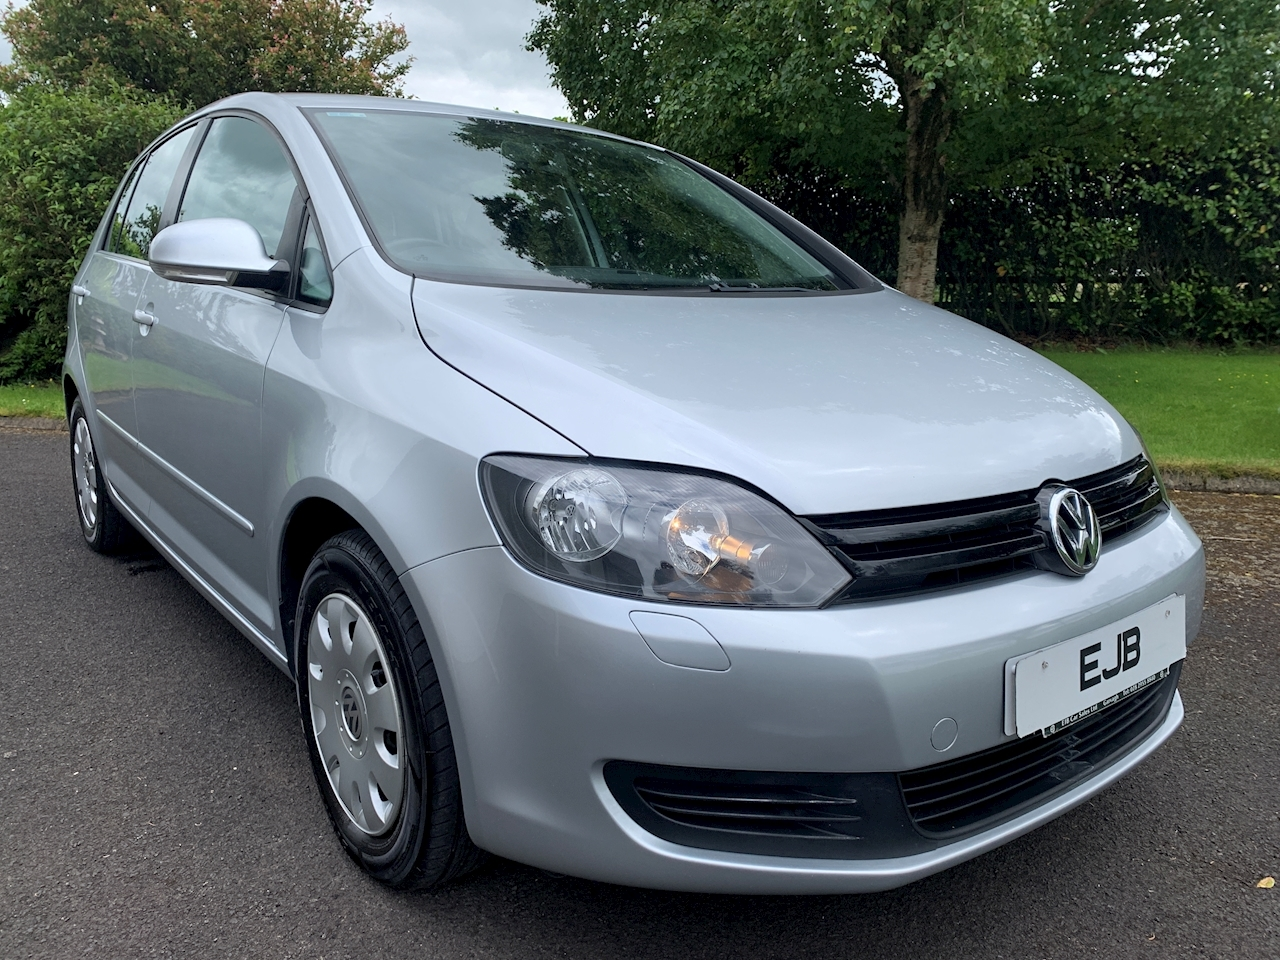 Volkswagen Golf Plus S Tdi Hatchback 1.6 Manual Diesel